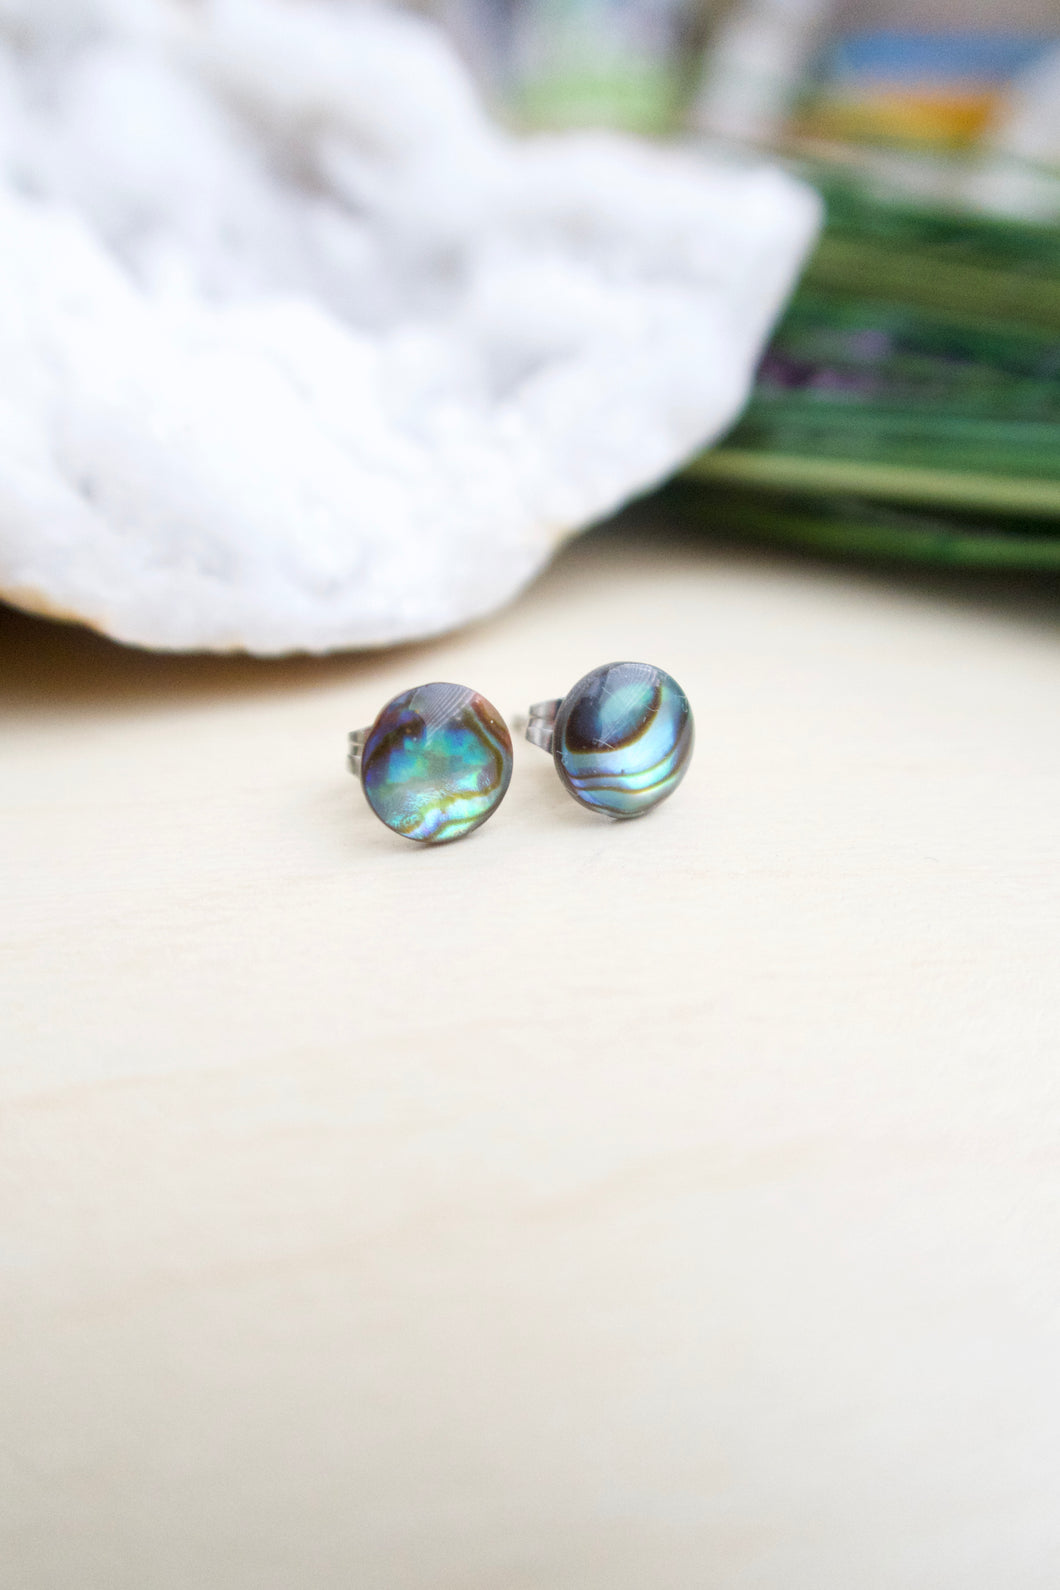 Natural abalone shell round stud earrings on hypoallergenic surgical steel posts